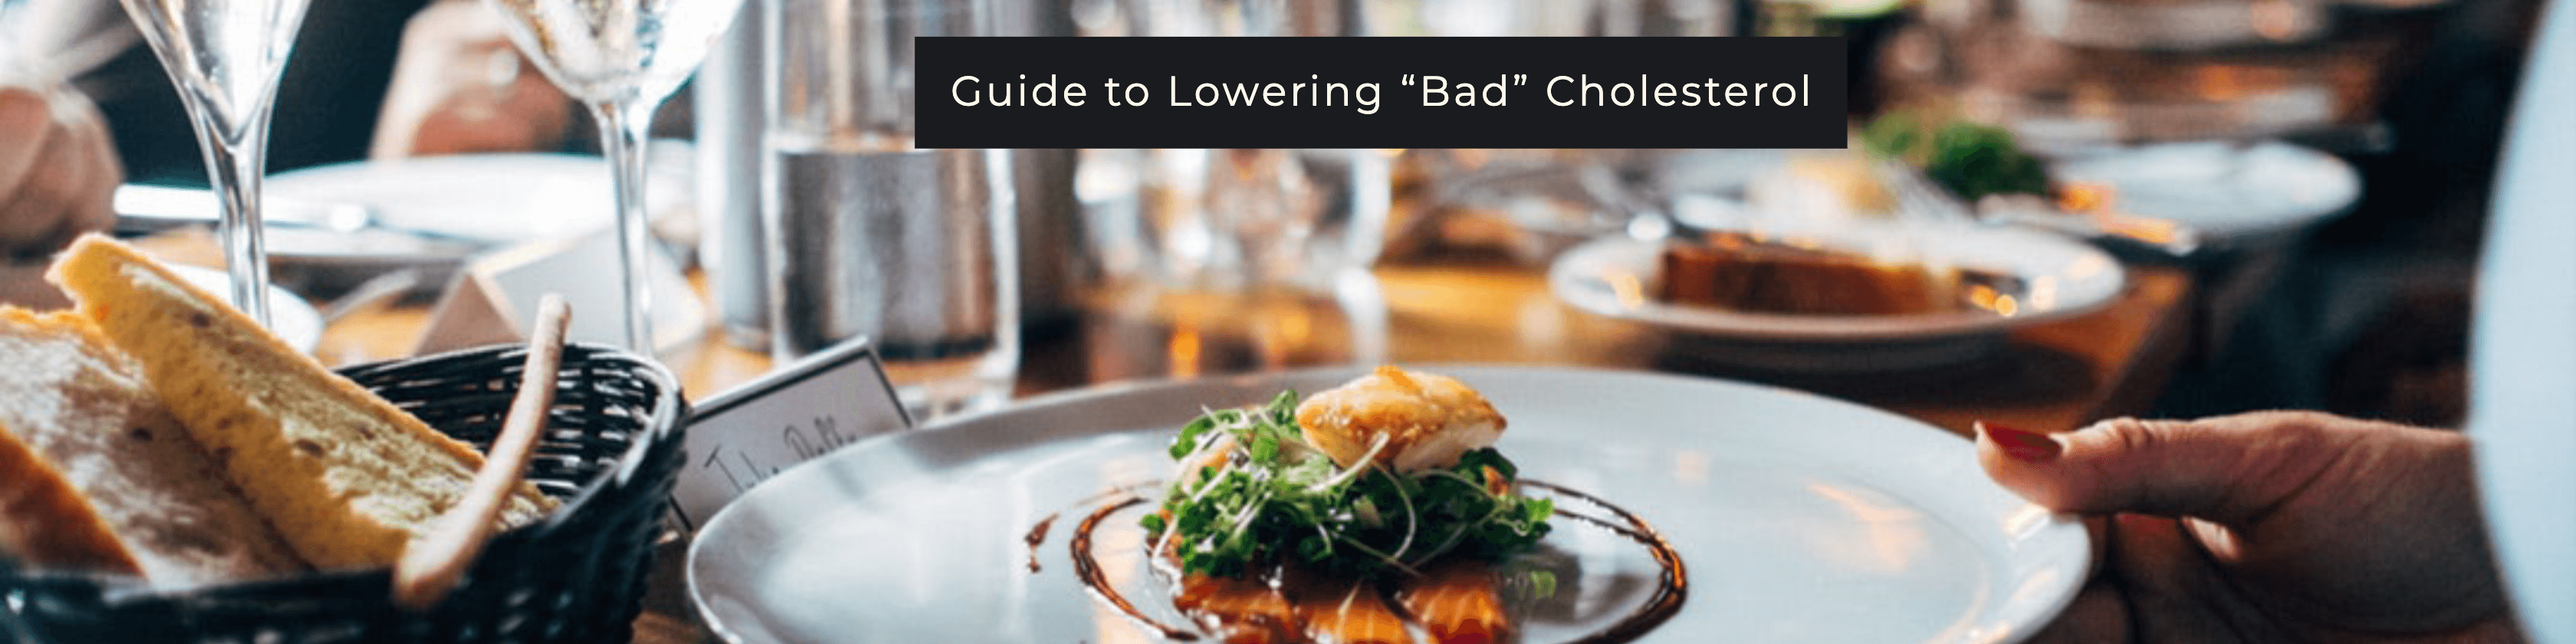 Lowering Bad Cholesterol